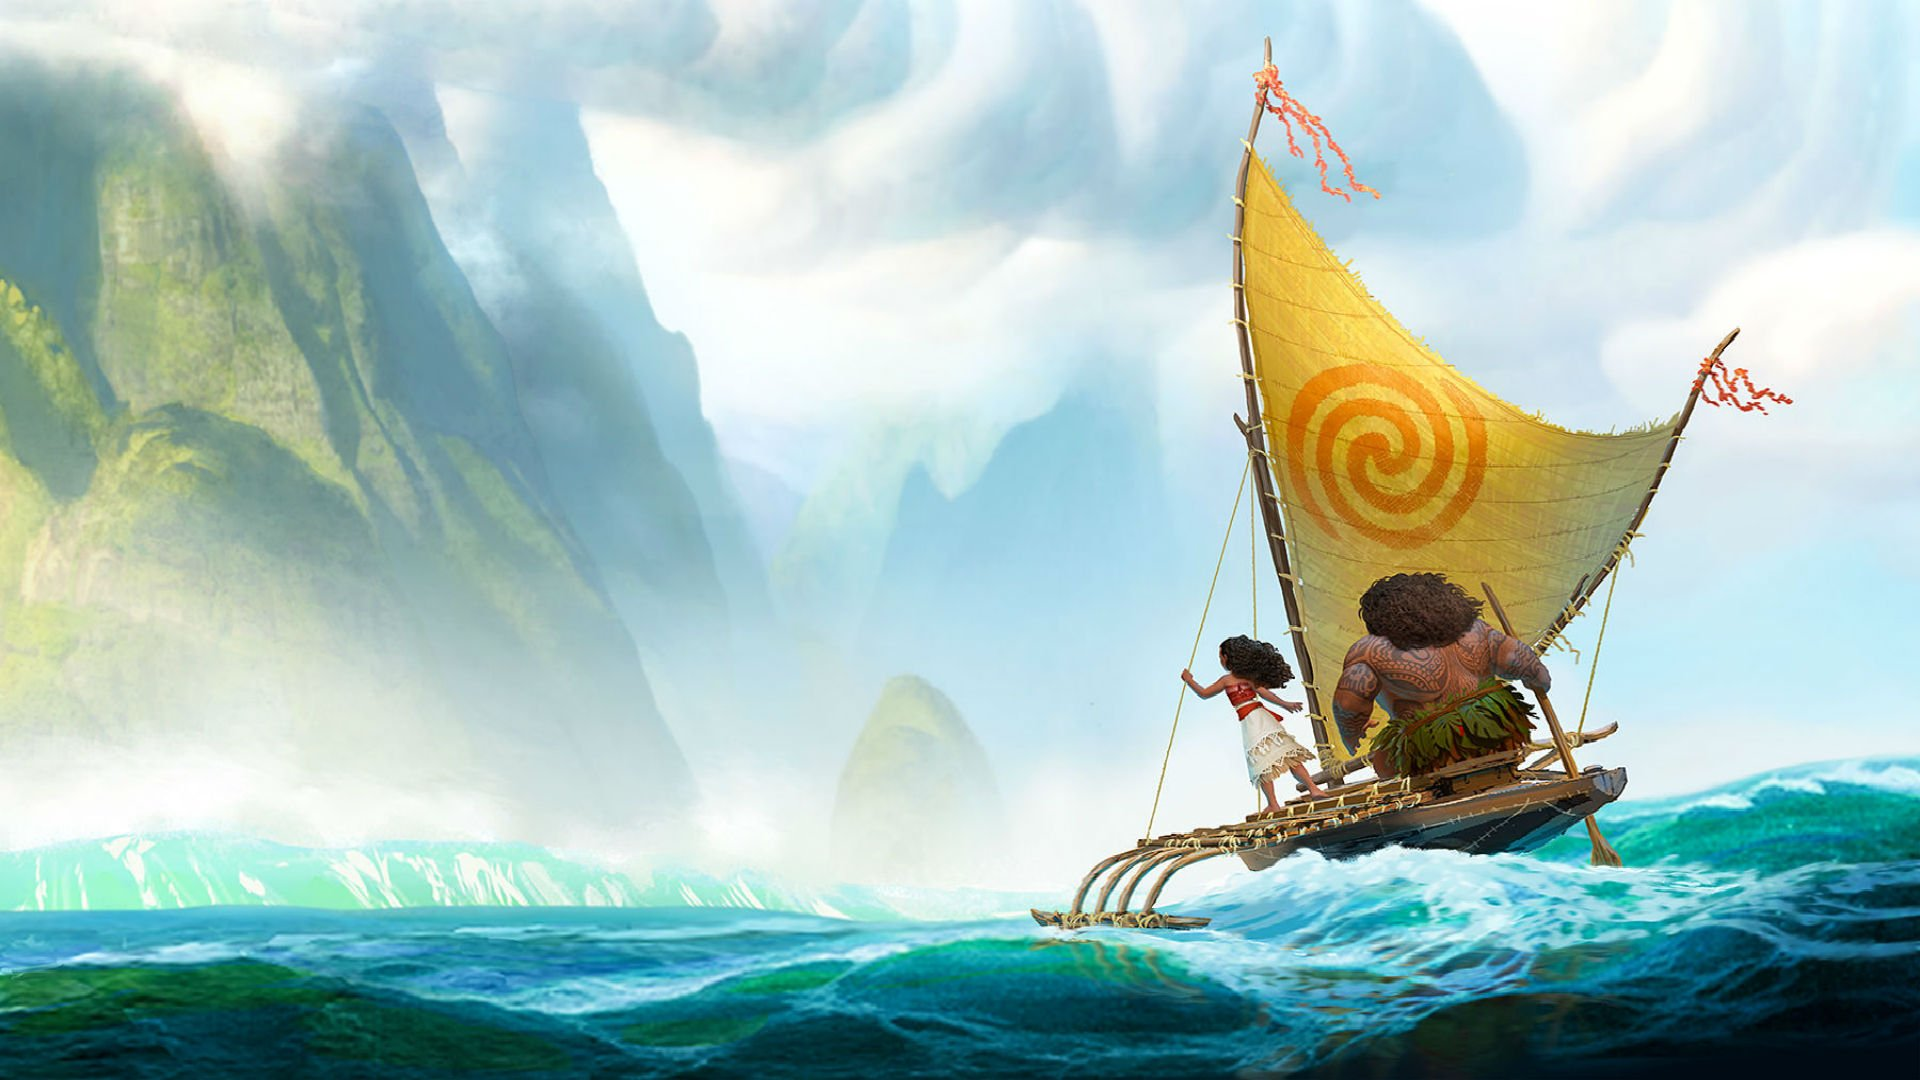 Moana disney princess fantasy animation adventure musical family 1moana 1920x1080